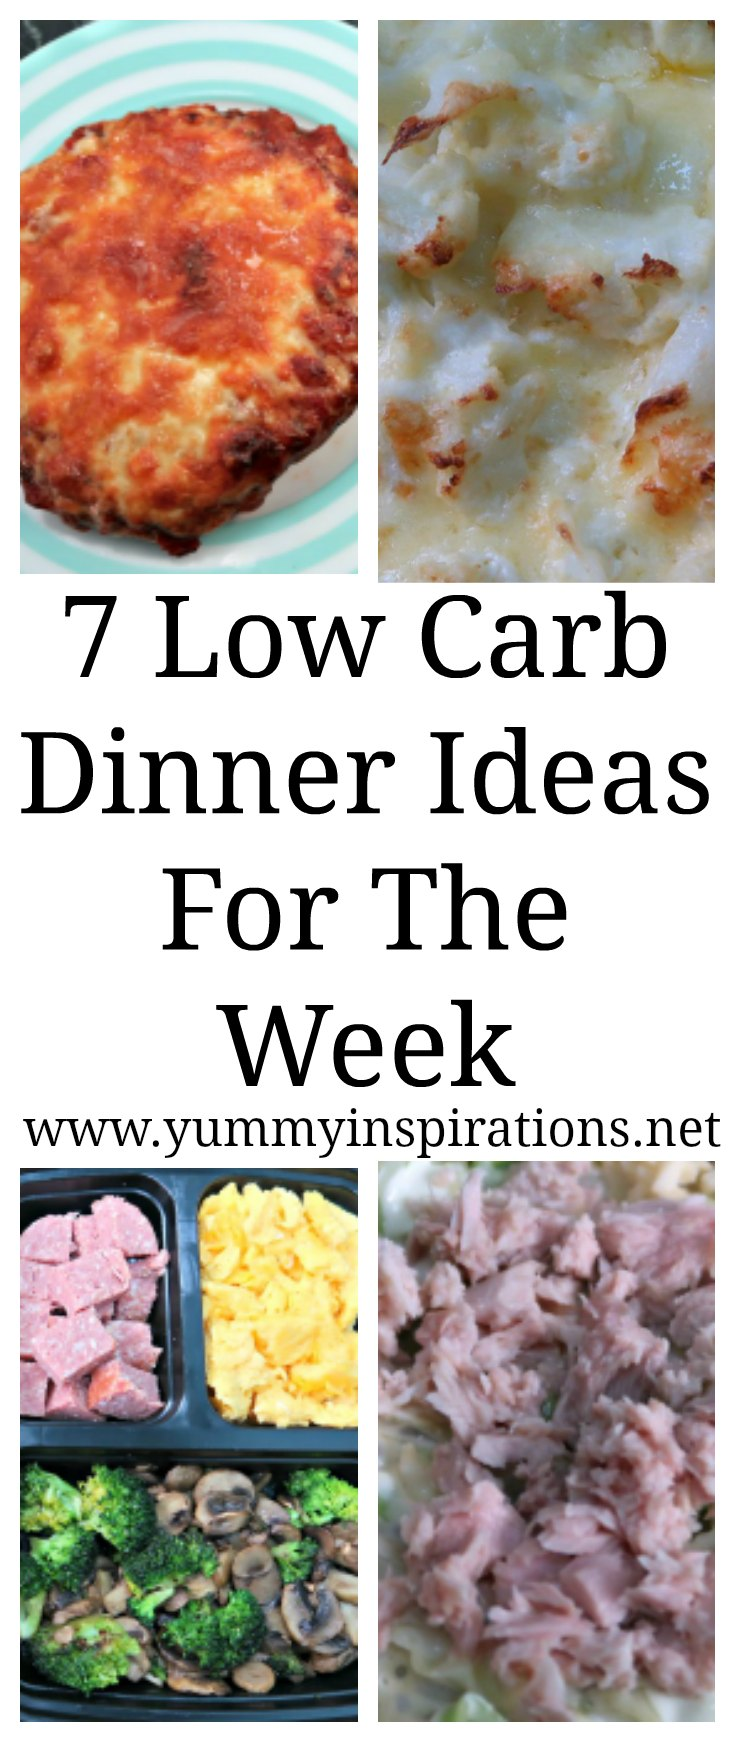 7 low carb dinner ideas easy keto dinner meal recipes for Quick and easy low carb dinner recipes